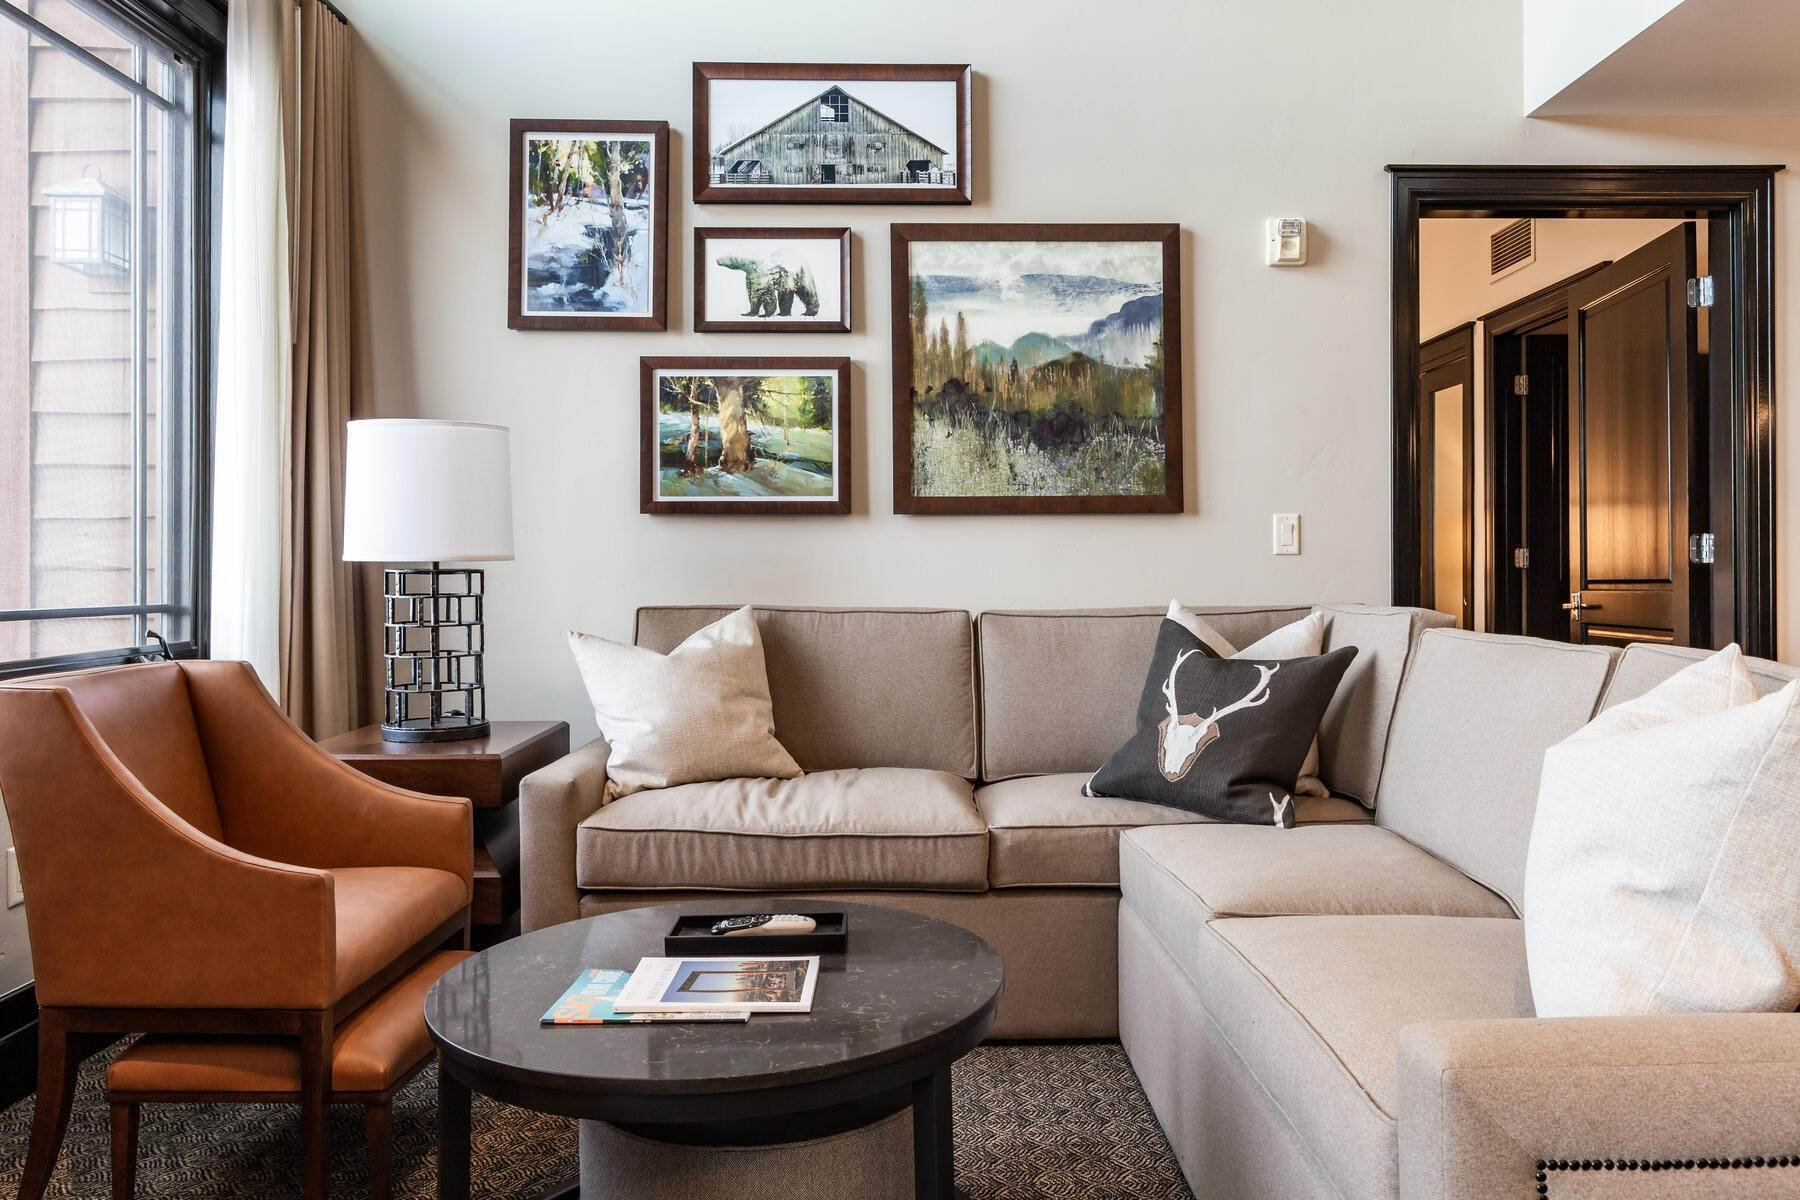 6. Condominiums for Sale at Only 4-Bedroom Available at Waldorf Astoria, Top Floor, Penthouse Unit 2100 W Frostwood Blvd, #7117 Park City, Utah 84098 United States